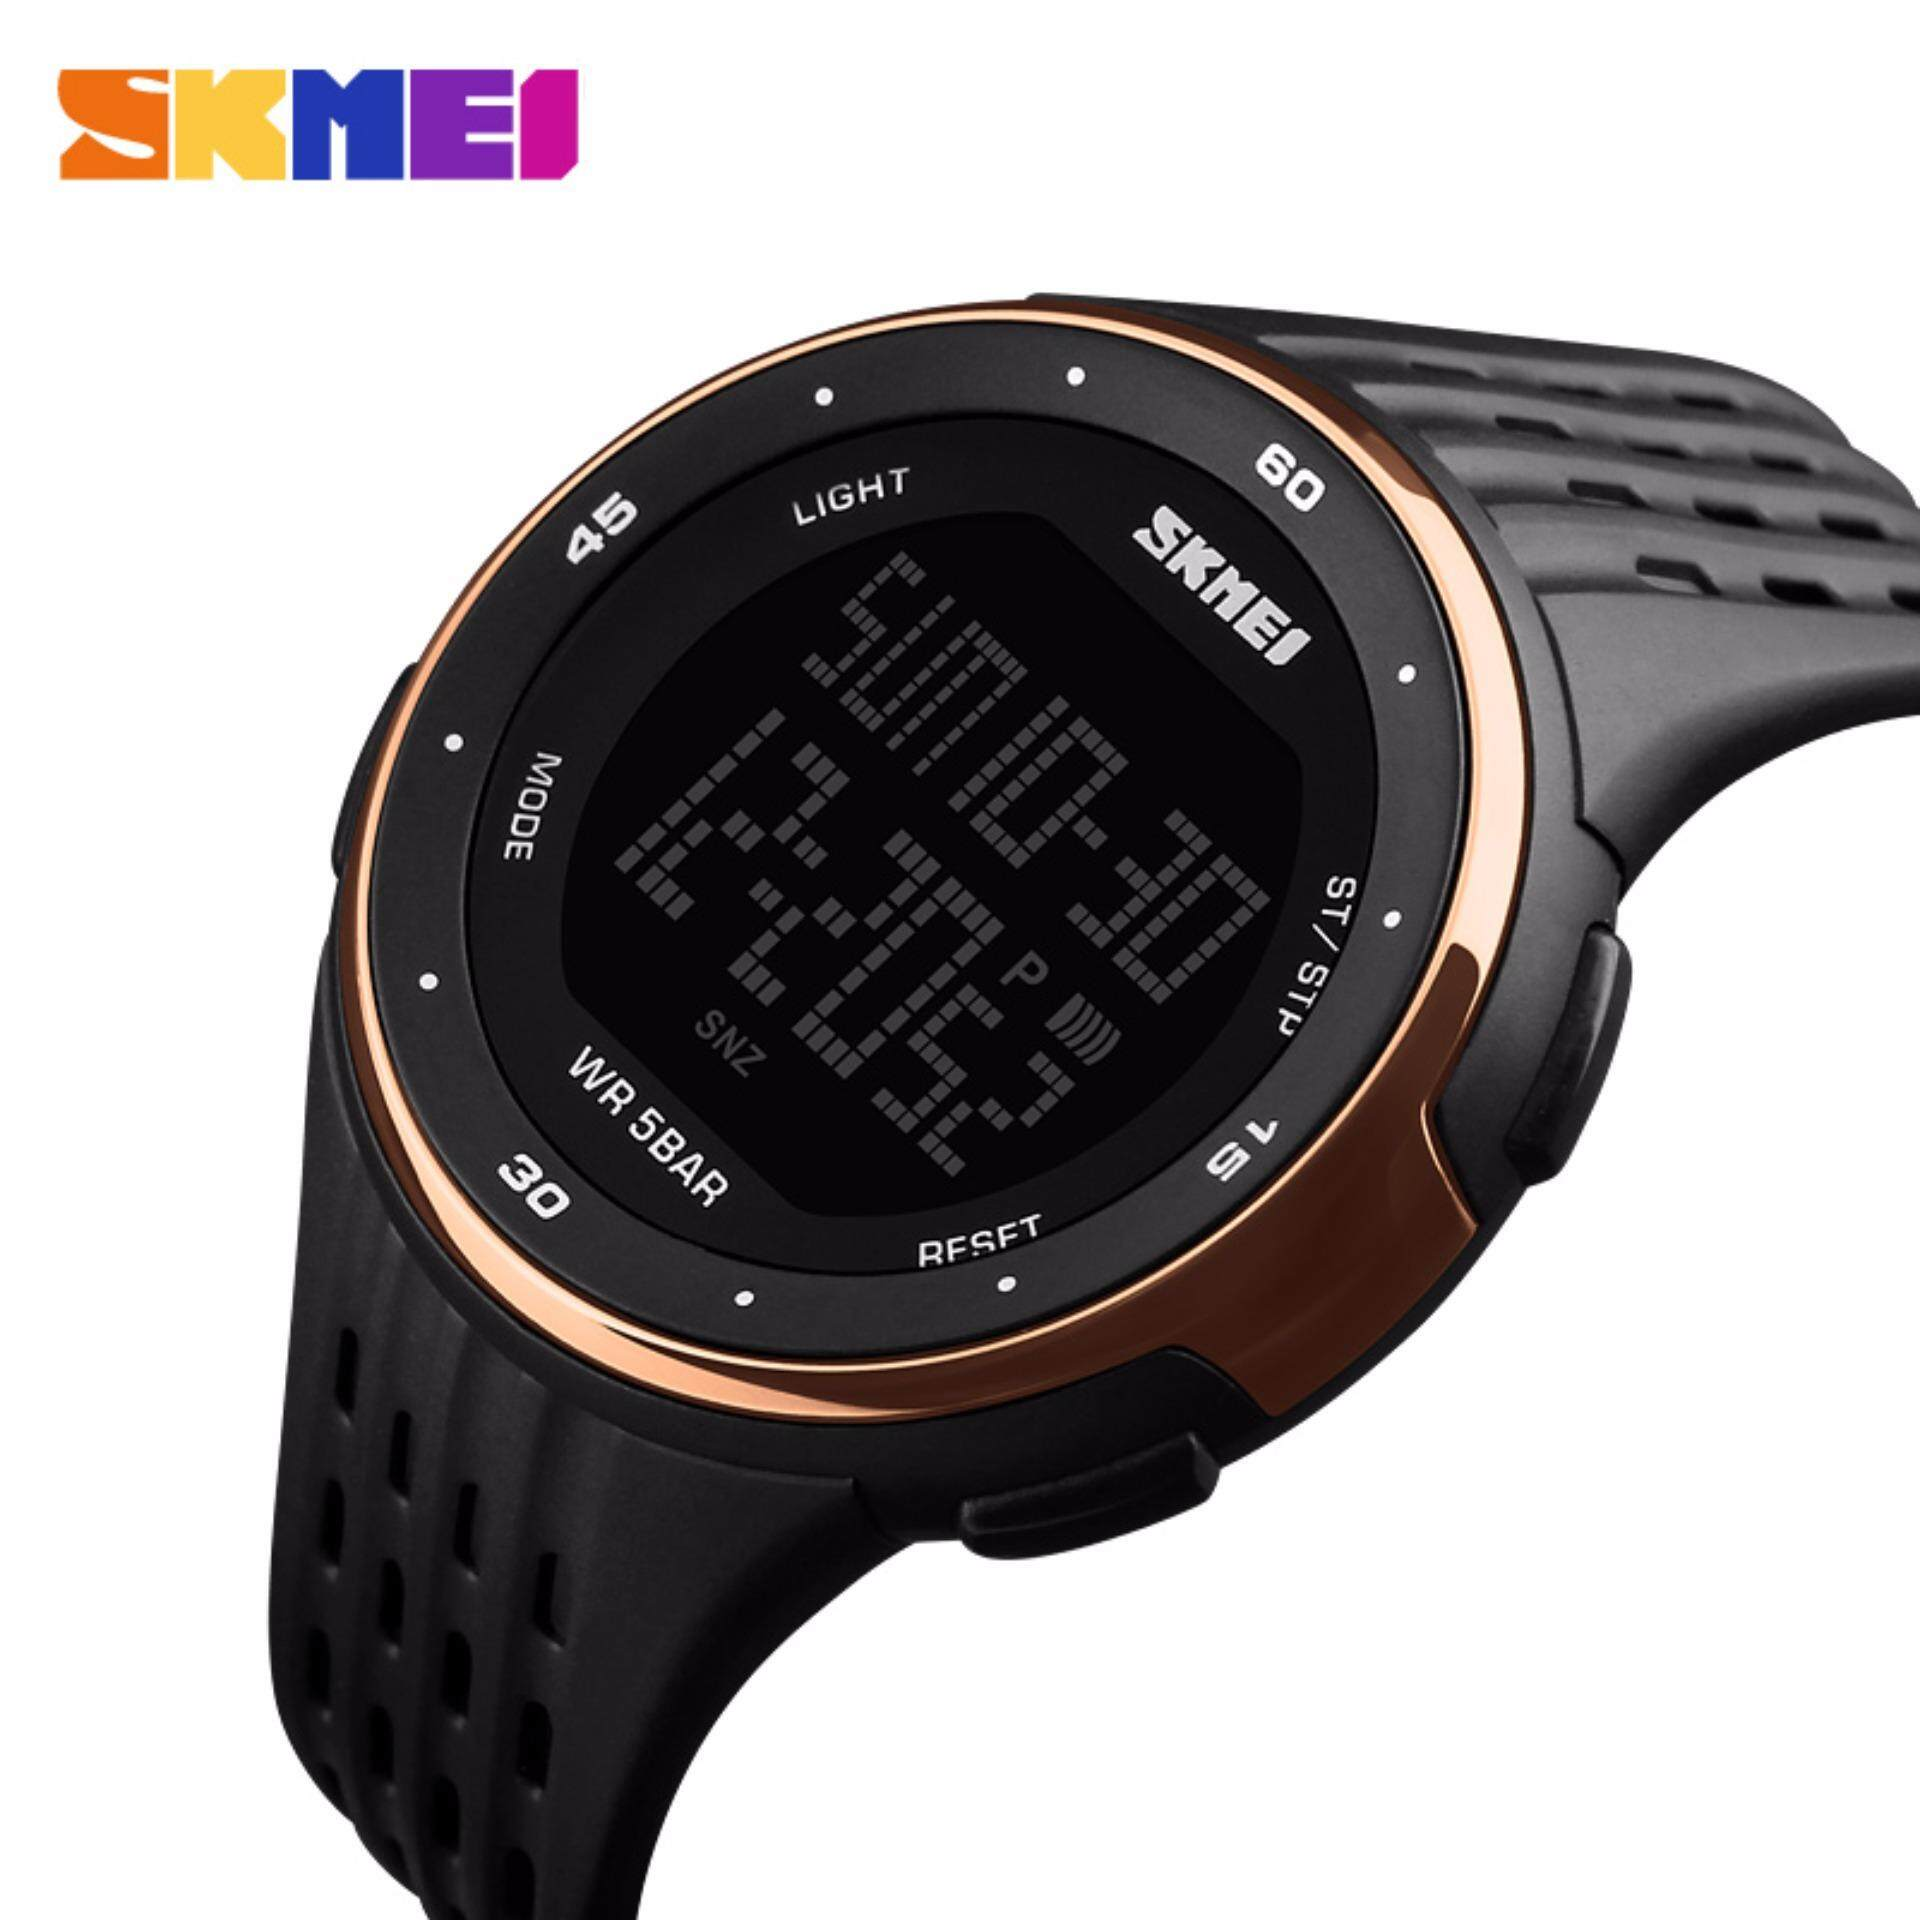 1ddfdb9a4 Luxury SKMEI Brand Women LED Digital Watches 50m Waterproof Military Sport  Watches High end Men Fashion